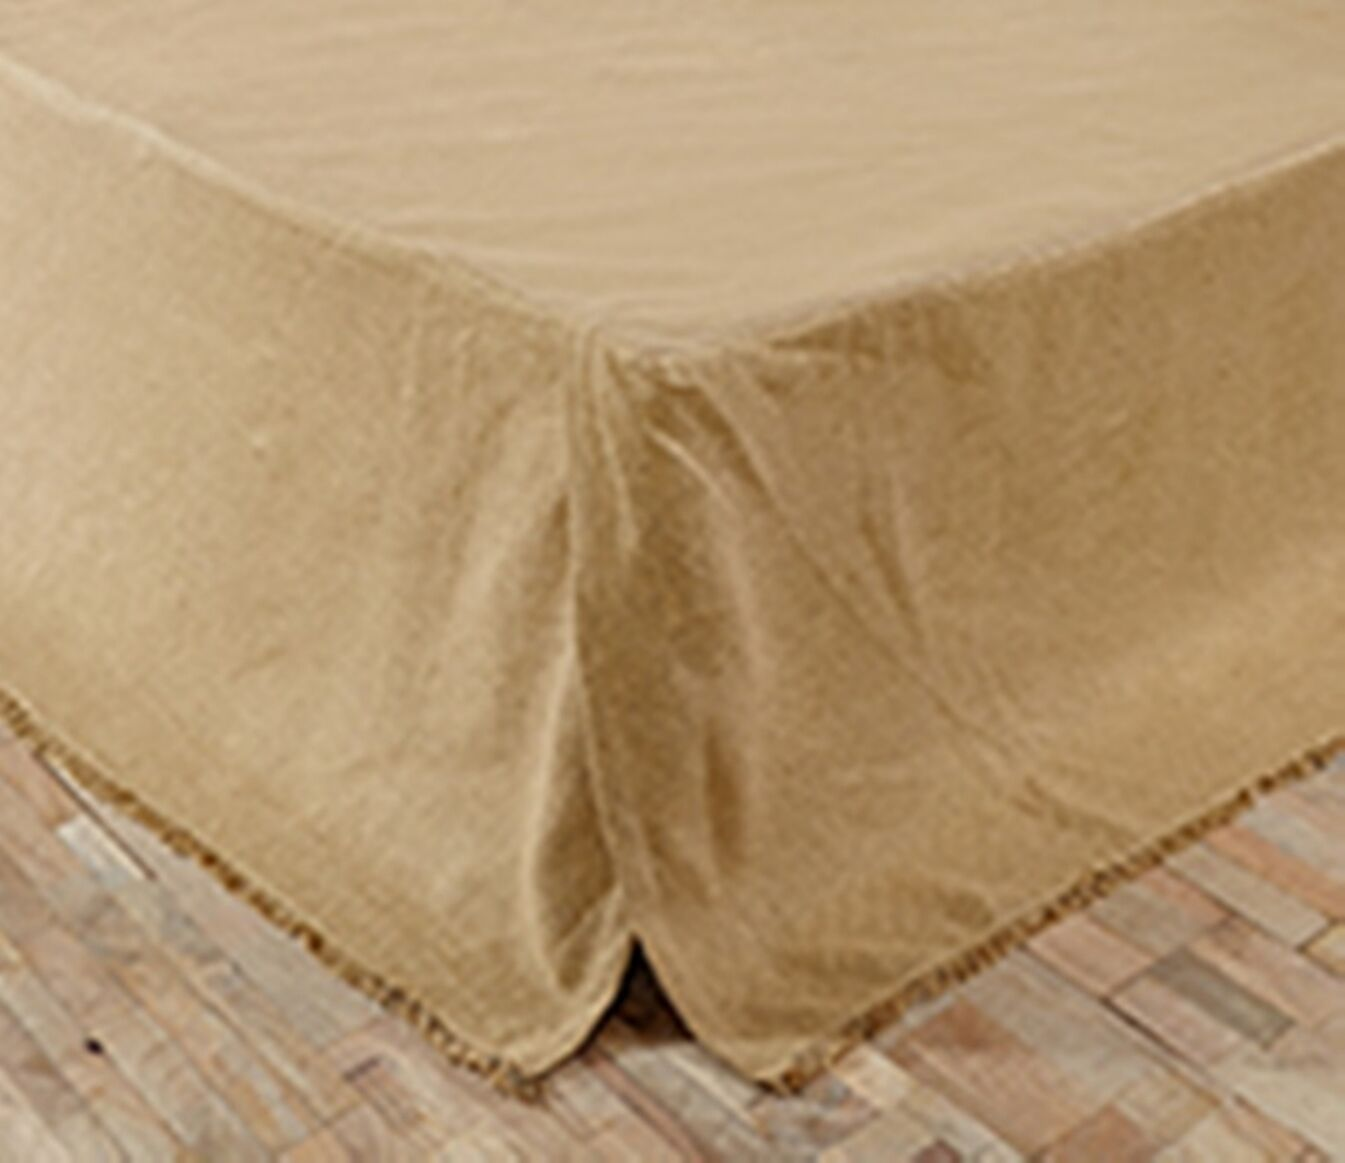 BURLAP NATURAL FRINGED QUEEN BED SKIRT TAYLORED FRINGED HEM 16  DROP SOFT COTTON